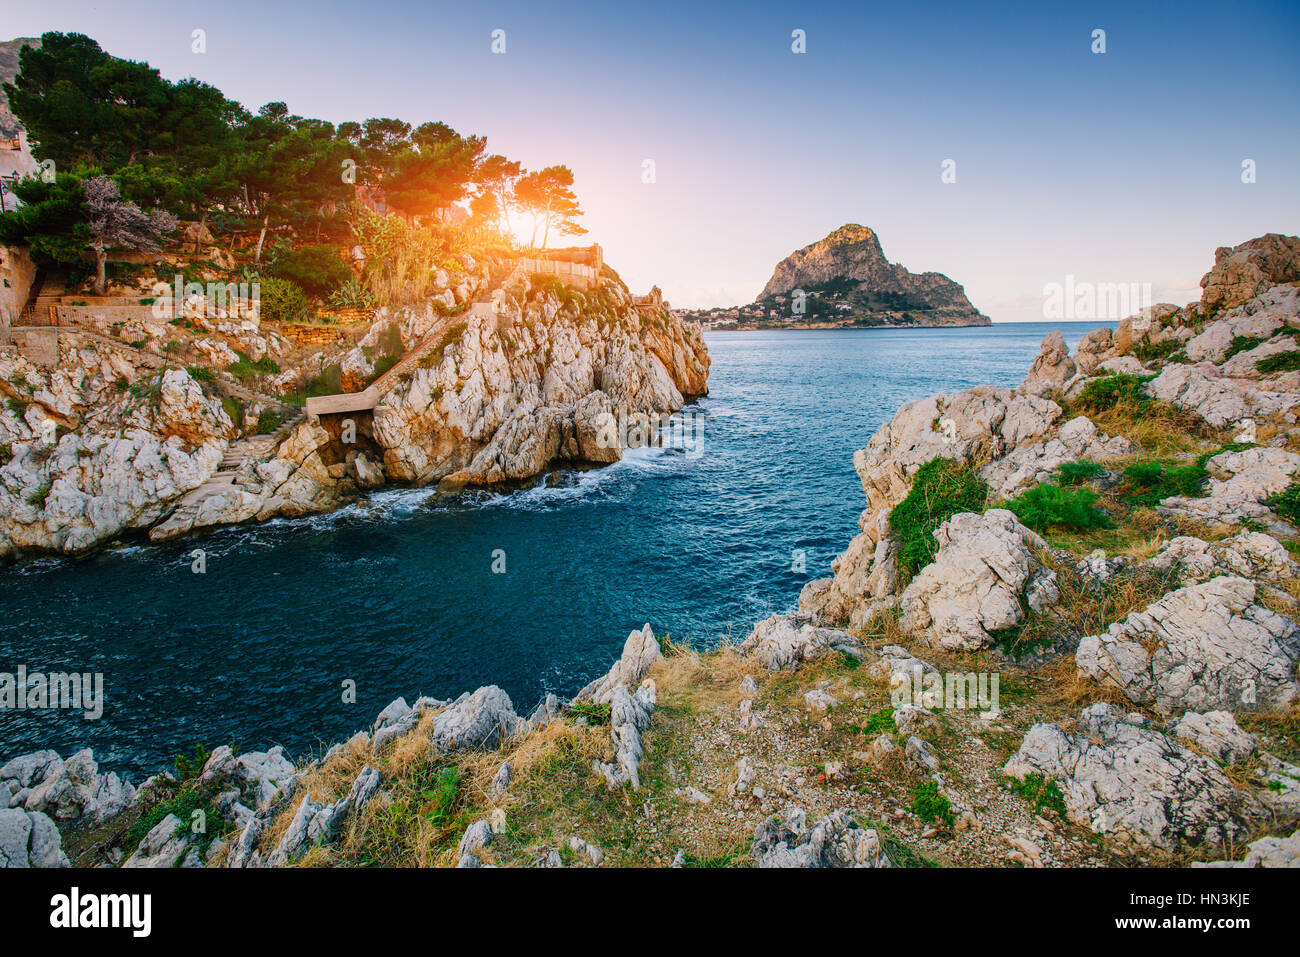 Sunset over the sea with rocks - Stock Image